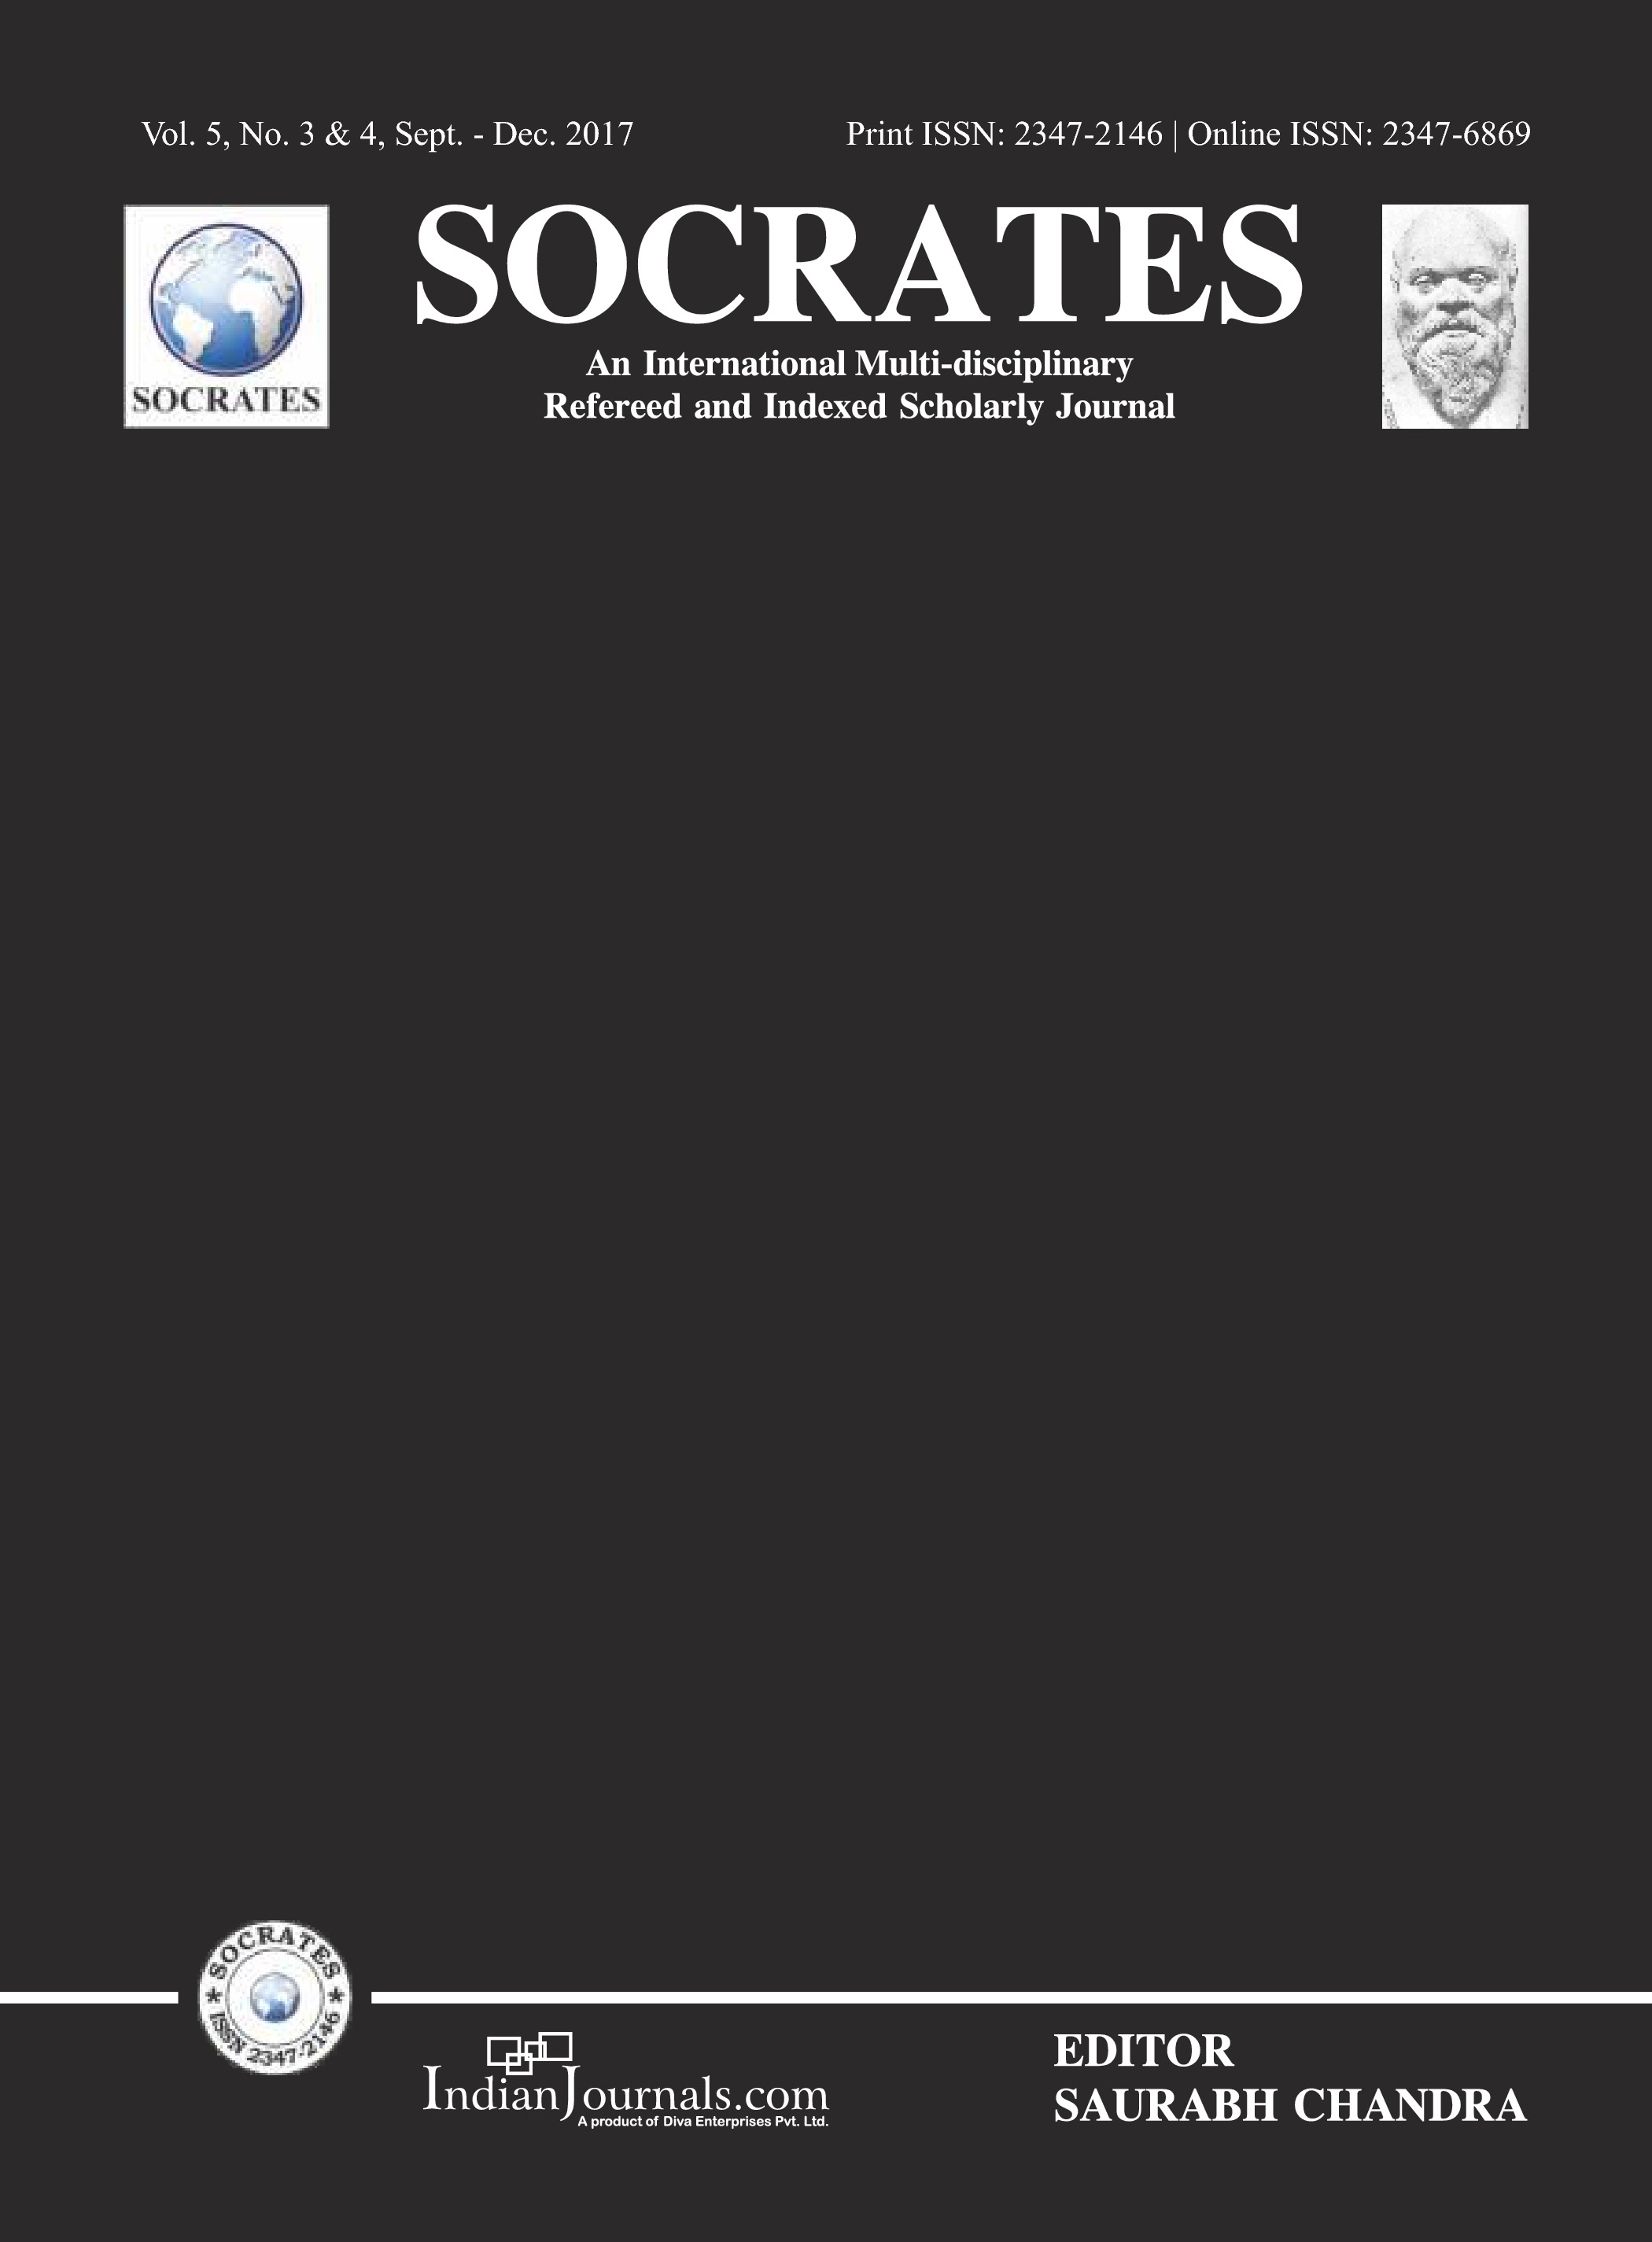 SOCRATES Vol 3, No 3 (2015): Issue- September